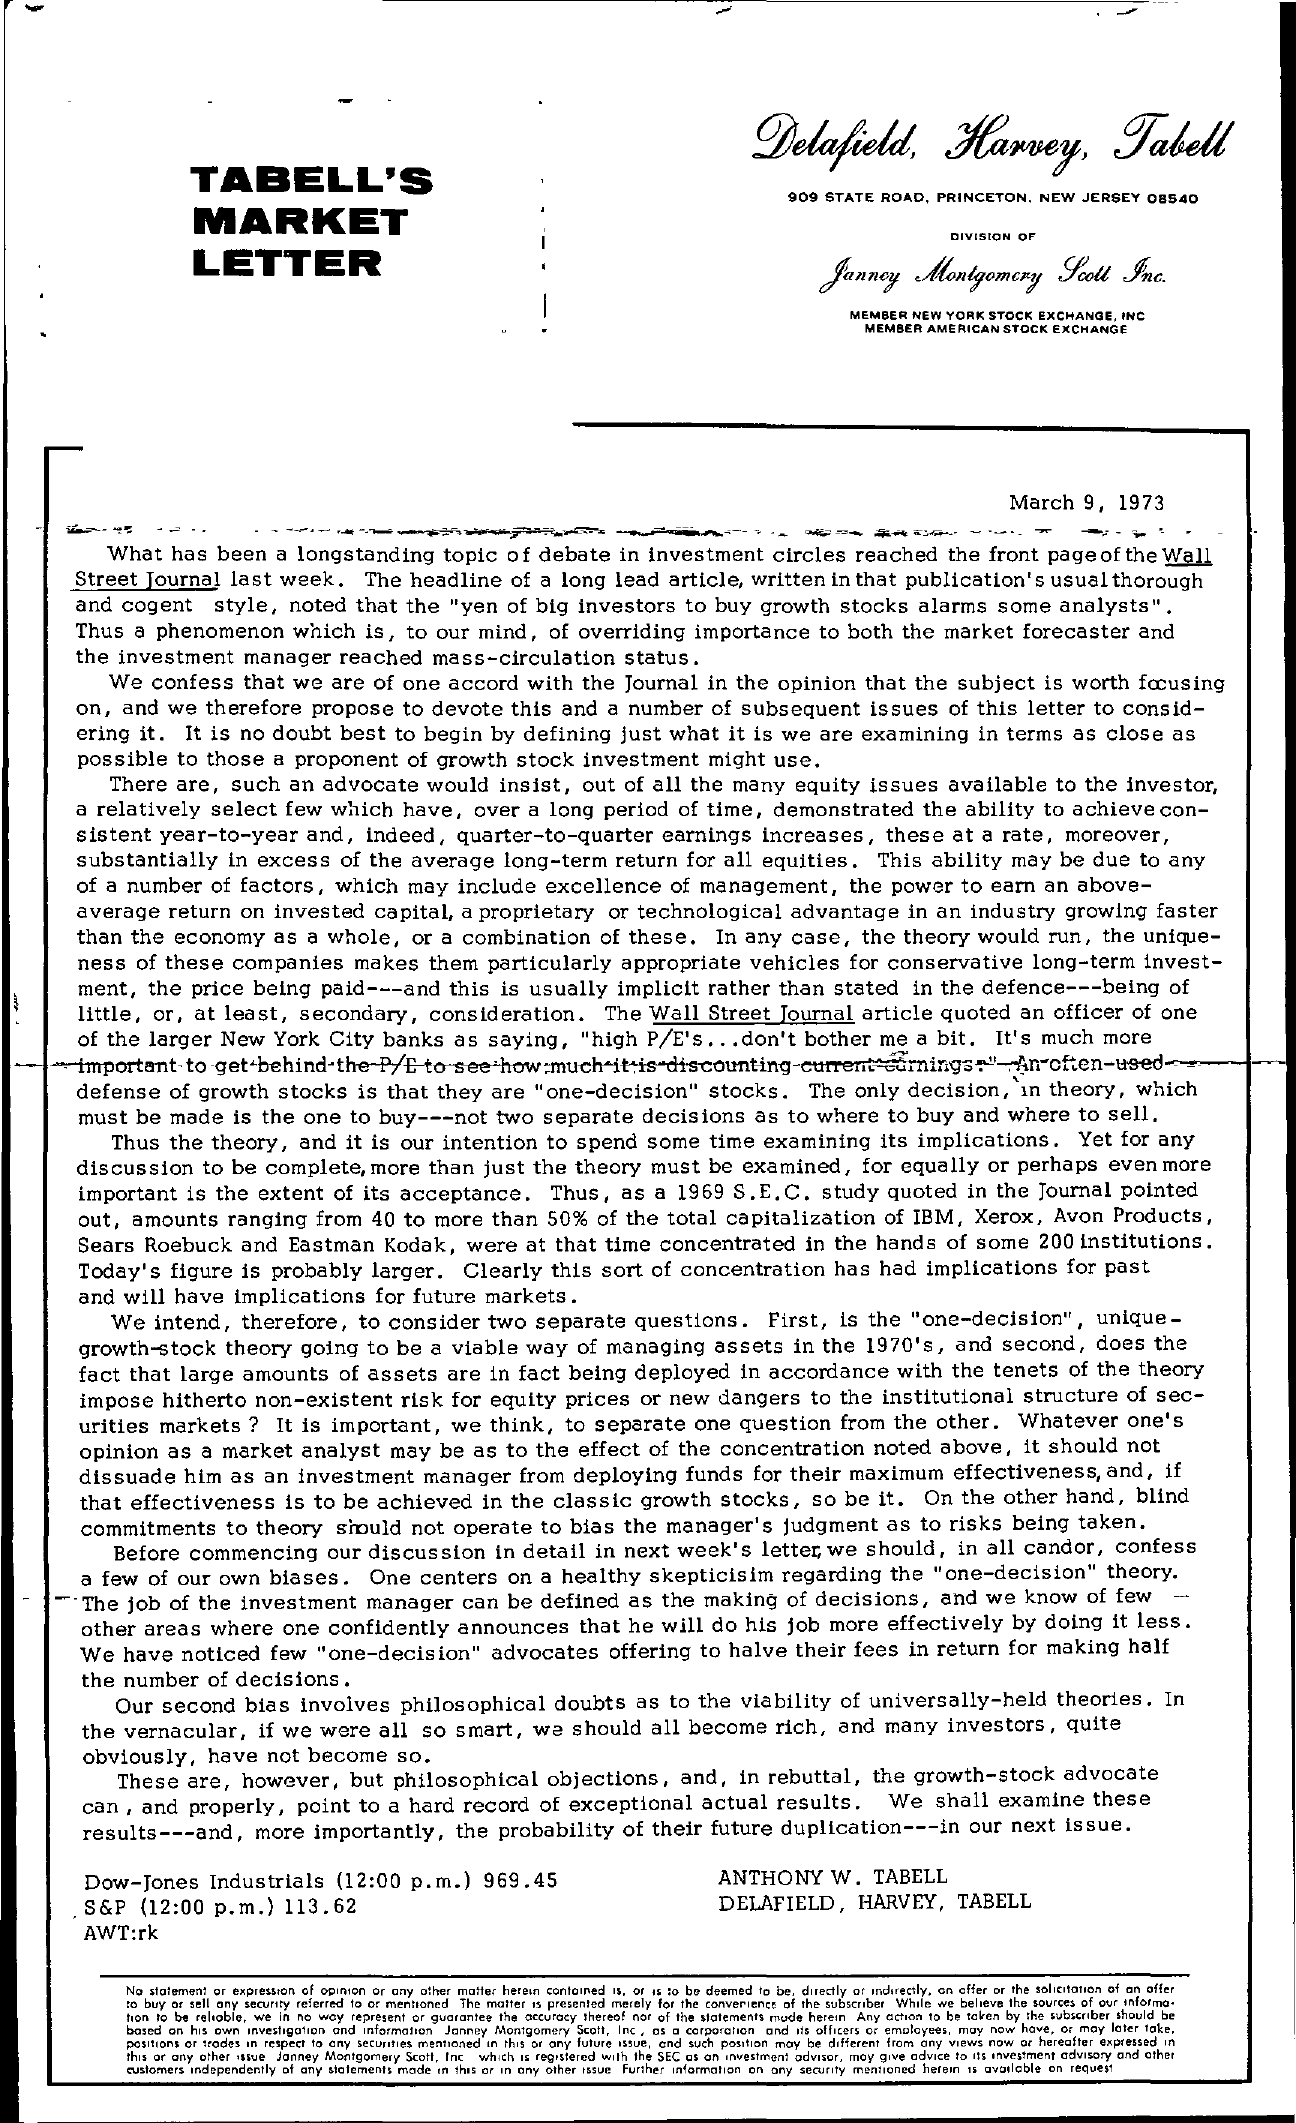 Tabell's Market Letter - March 09, 1973